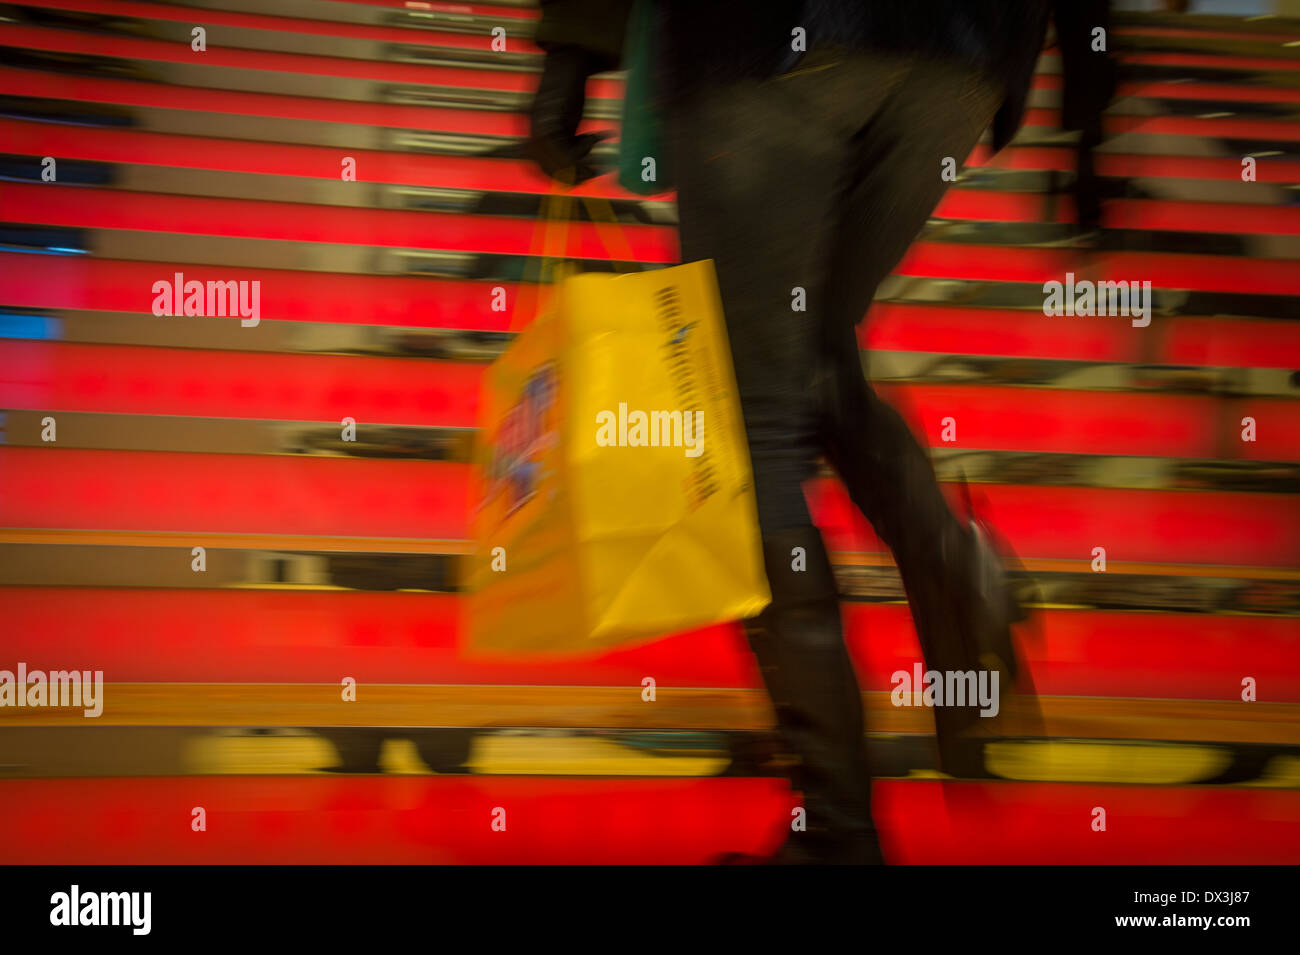 Woman Walking Up Red Steps Shopping In Mall - Stock Image